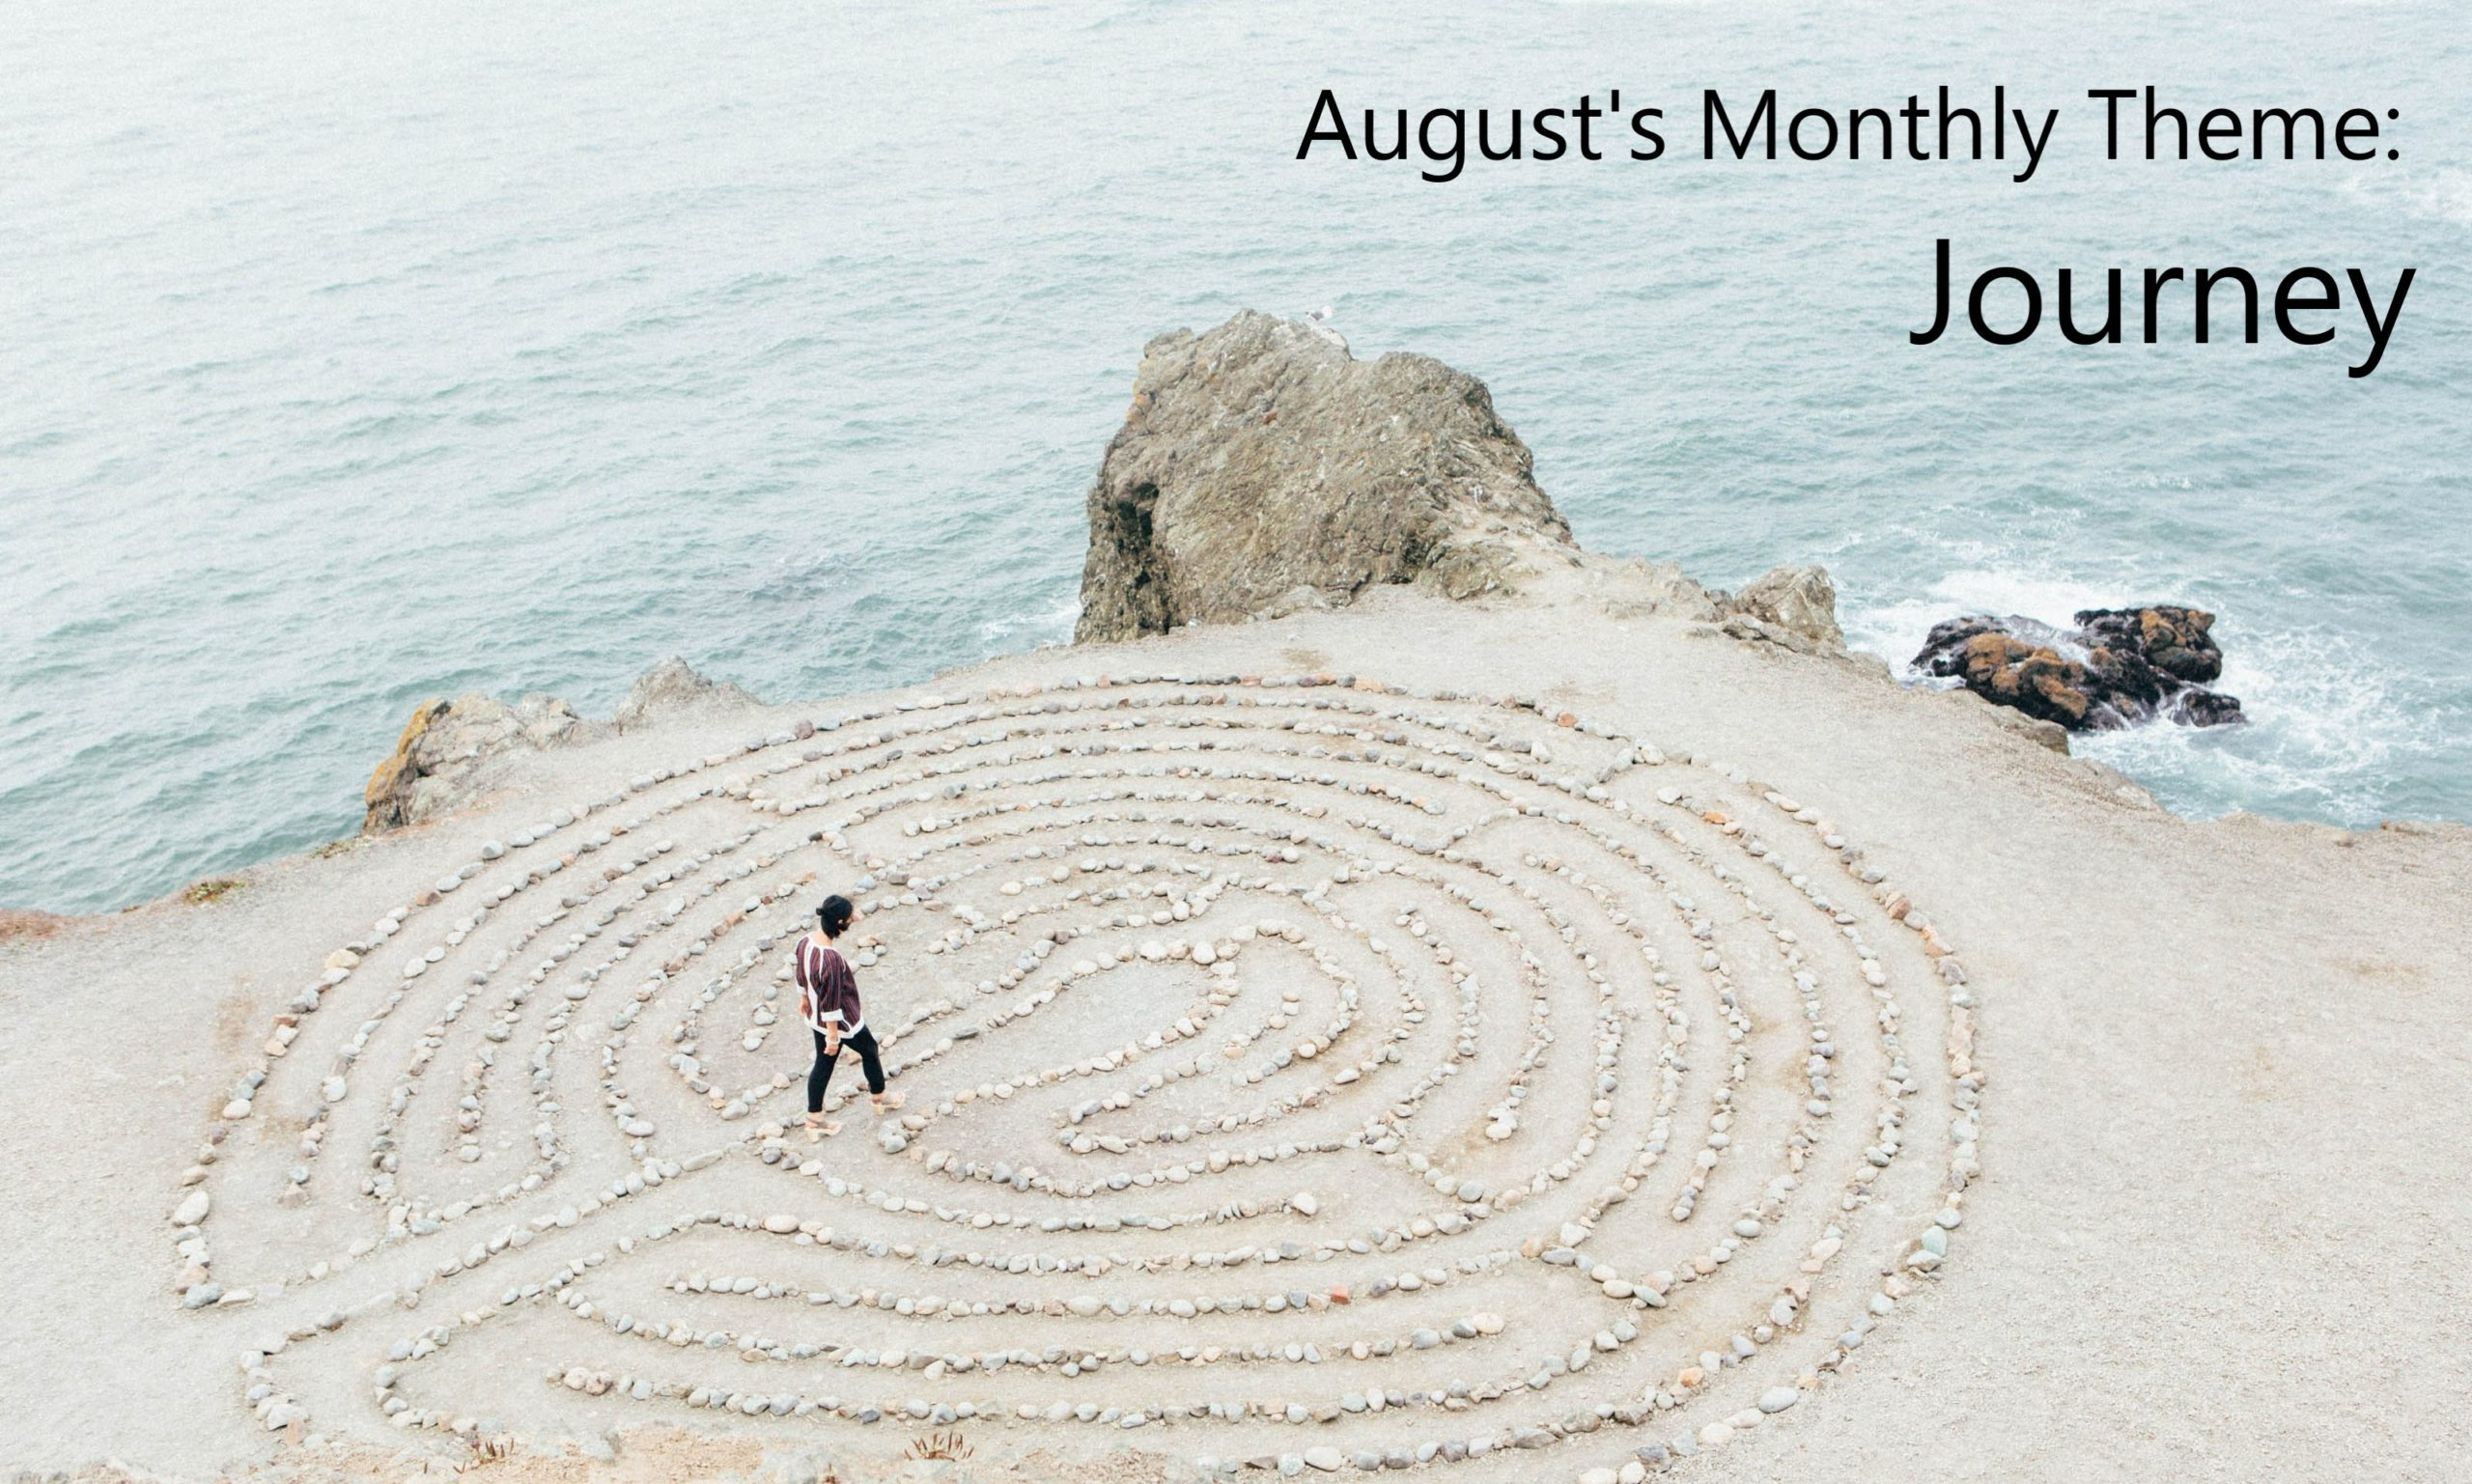 Labyrinth by the ocean, text: August's Monthly Theme: Journey